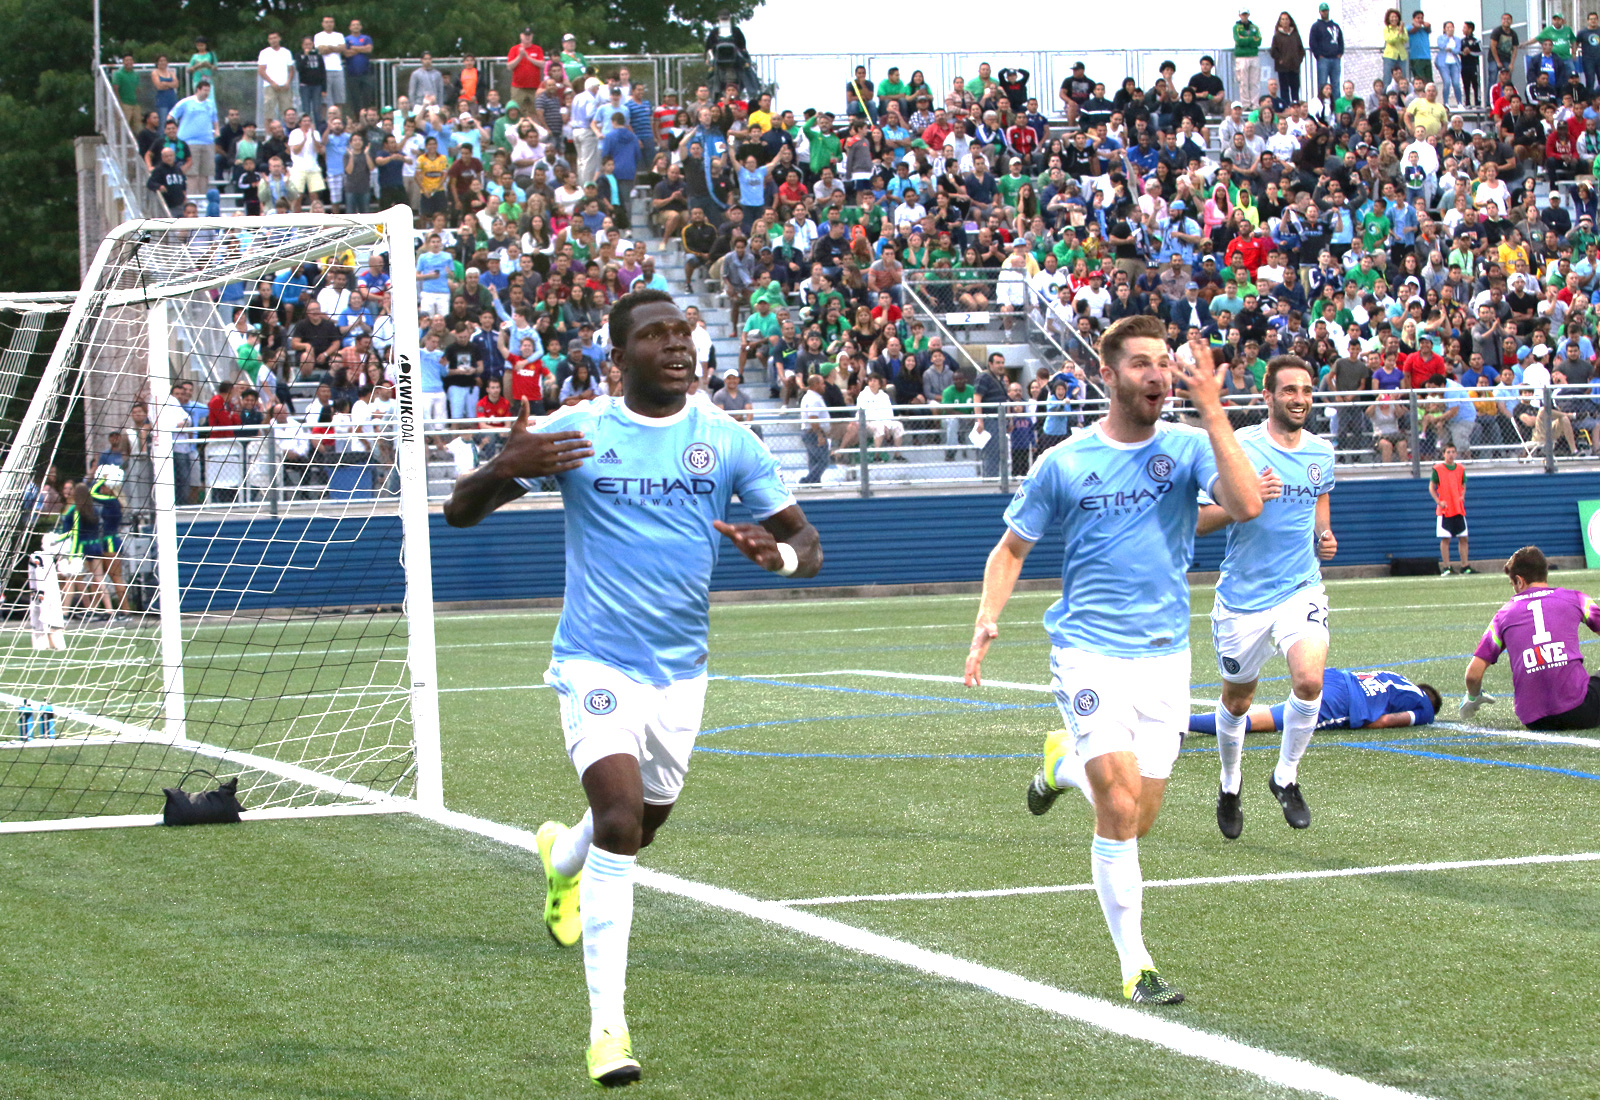 NYCFC midfielder Kwadwo Poku (88) and forward Patrick Mullins (14) run toward the away supporters section to celebrate Poku's goal in front of their fans.